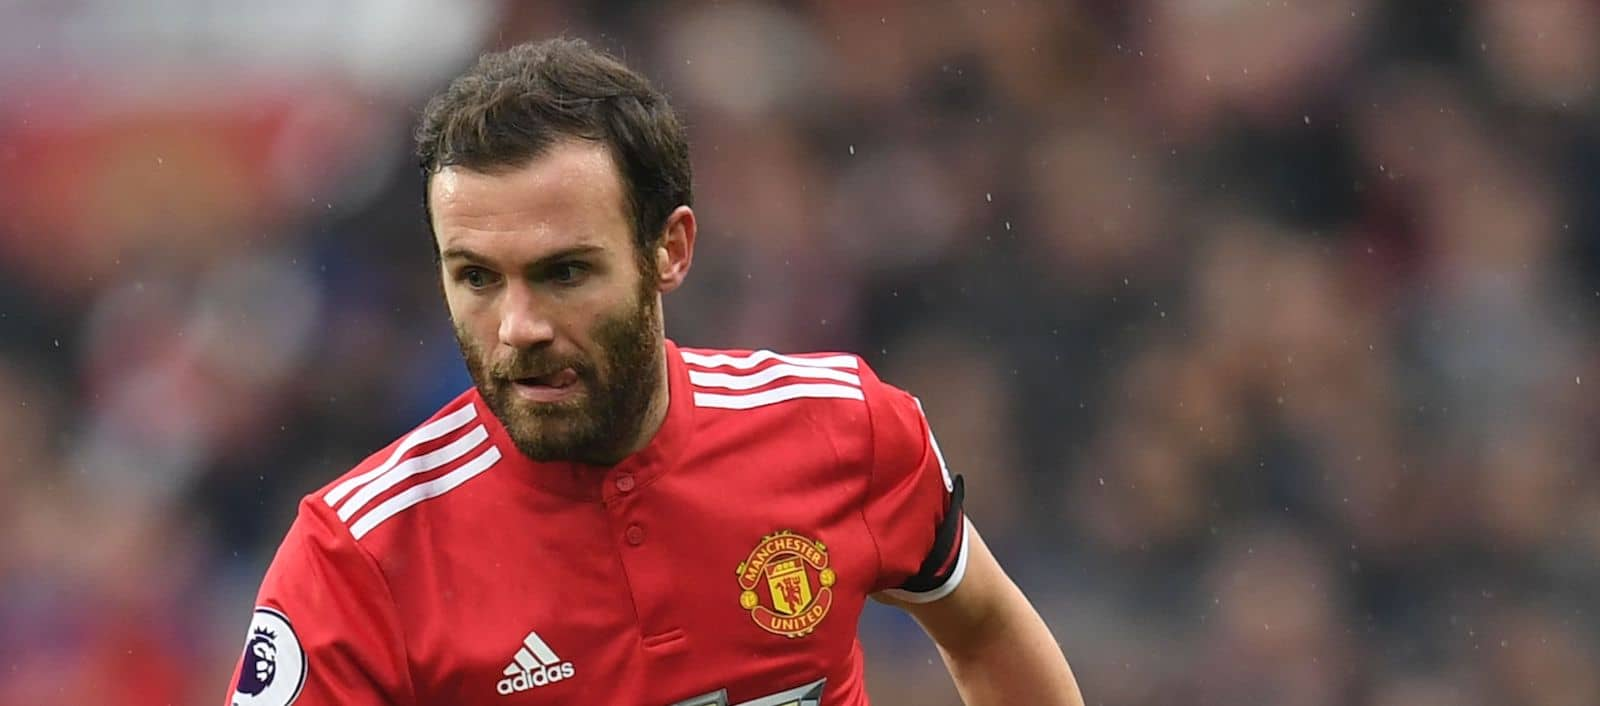 Juan Mata: Old Trafford crowd was key to comeback win over Newcastle United